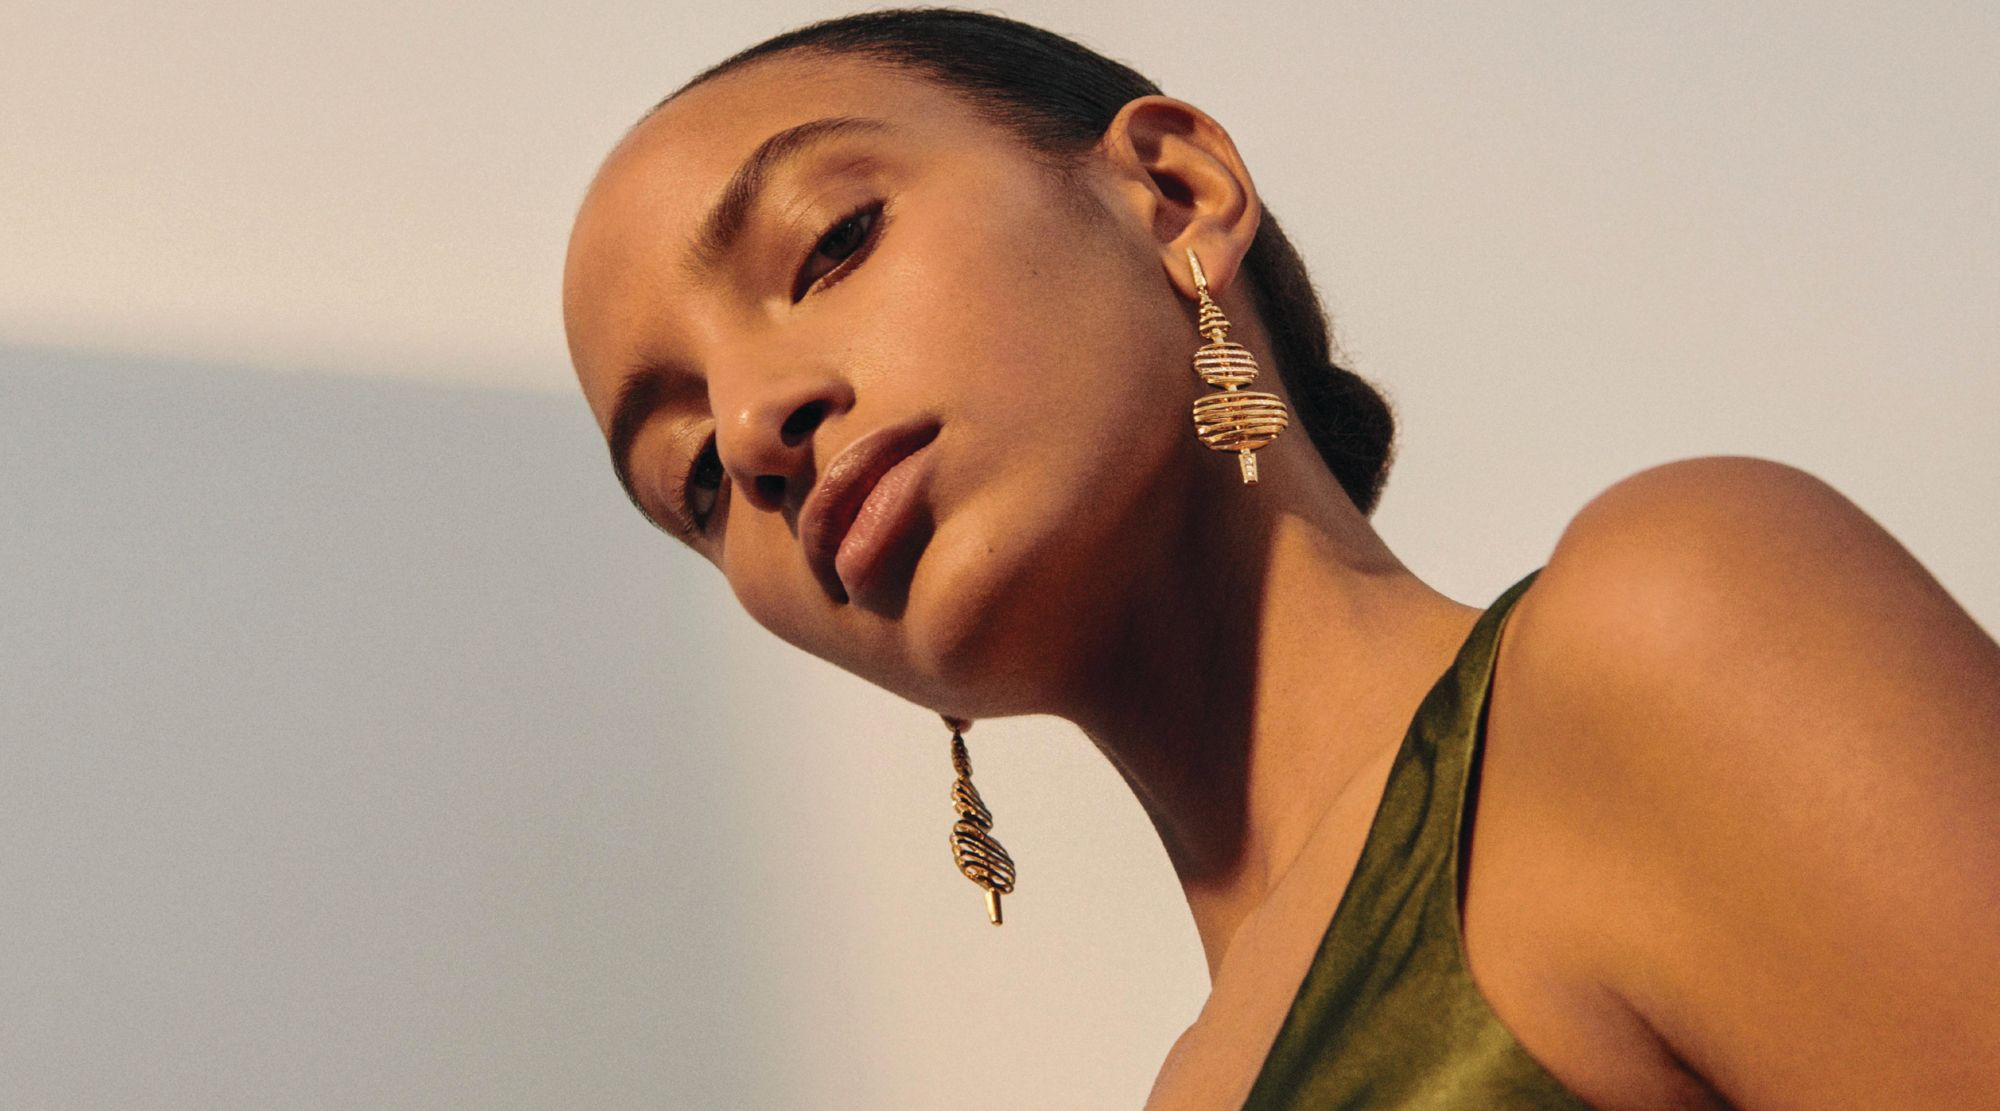 Garden Party earrings in yellow gold set with diamonds by Annoushka (Image: Annoushka)